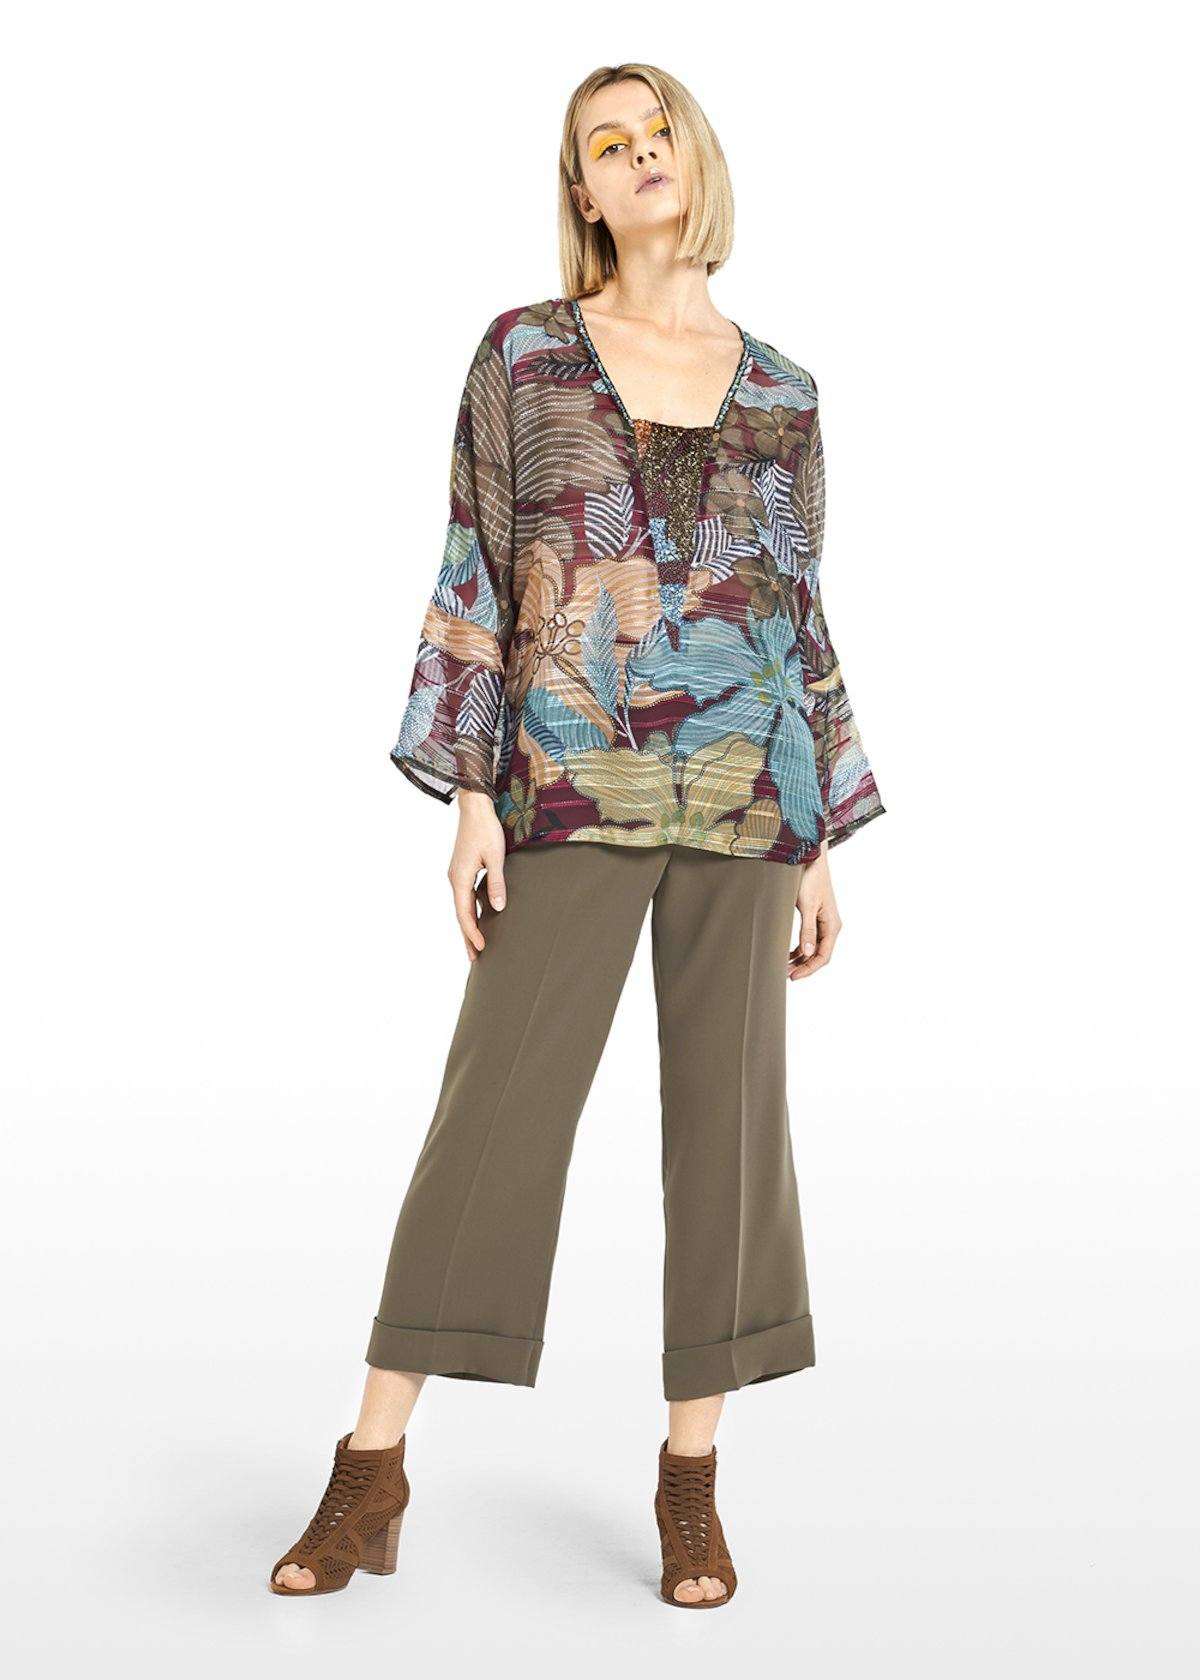 Cristel georgette blouse embroidered at the neck